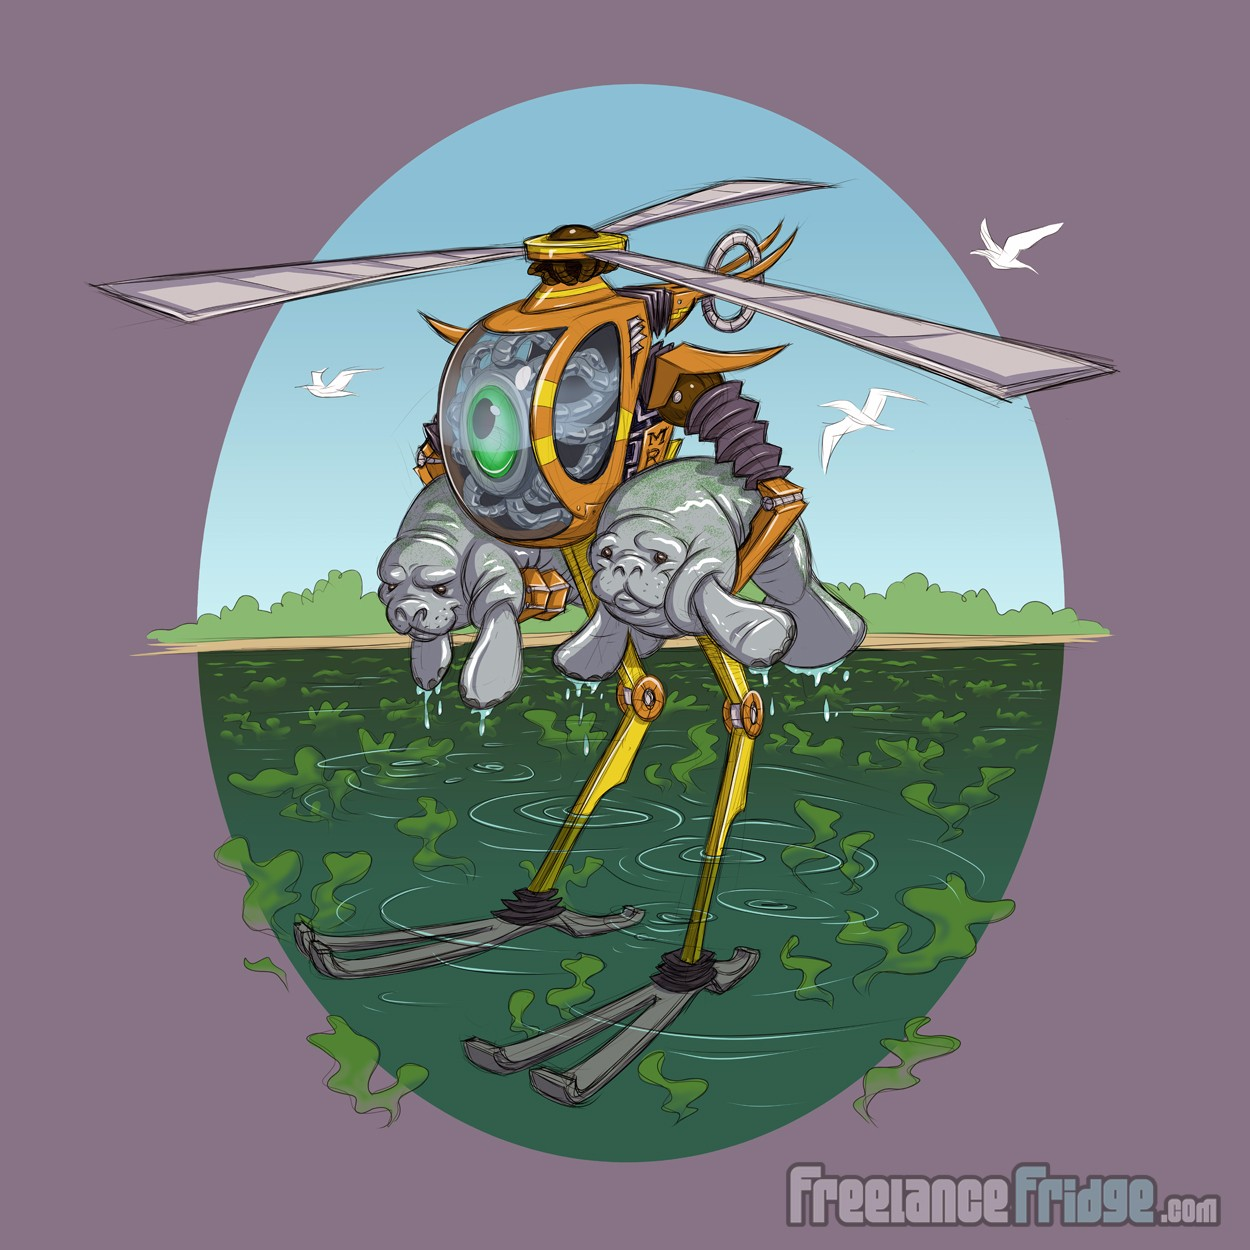 Helicopter Robot Rescuing Manatees Concept Artwork Sketch